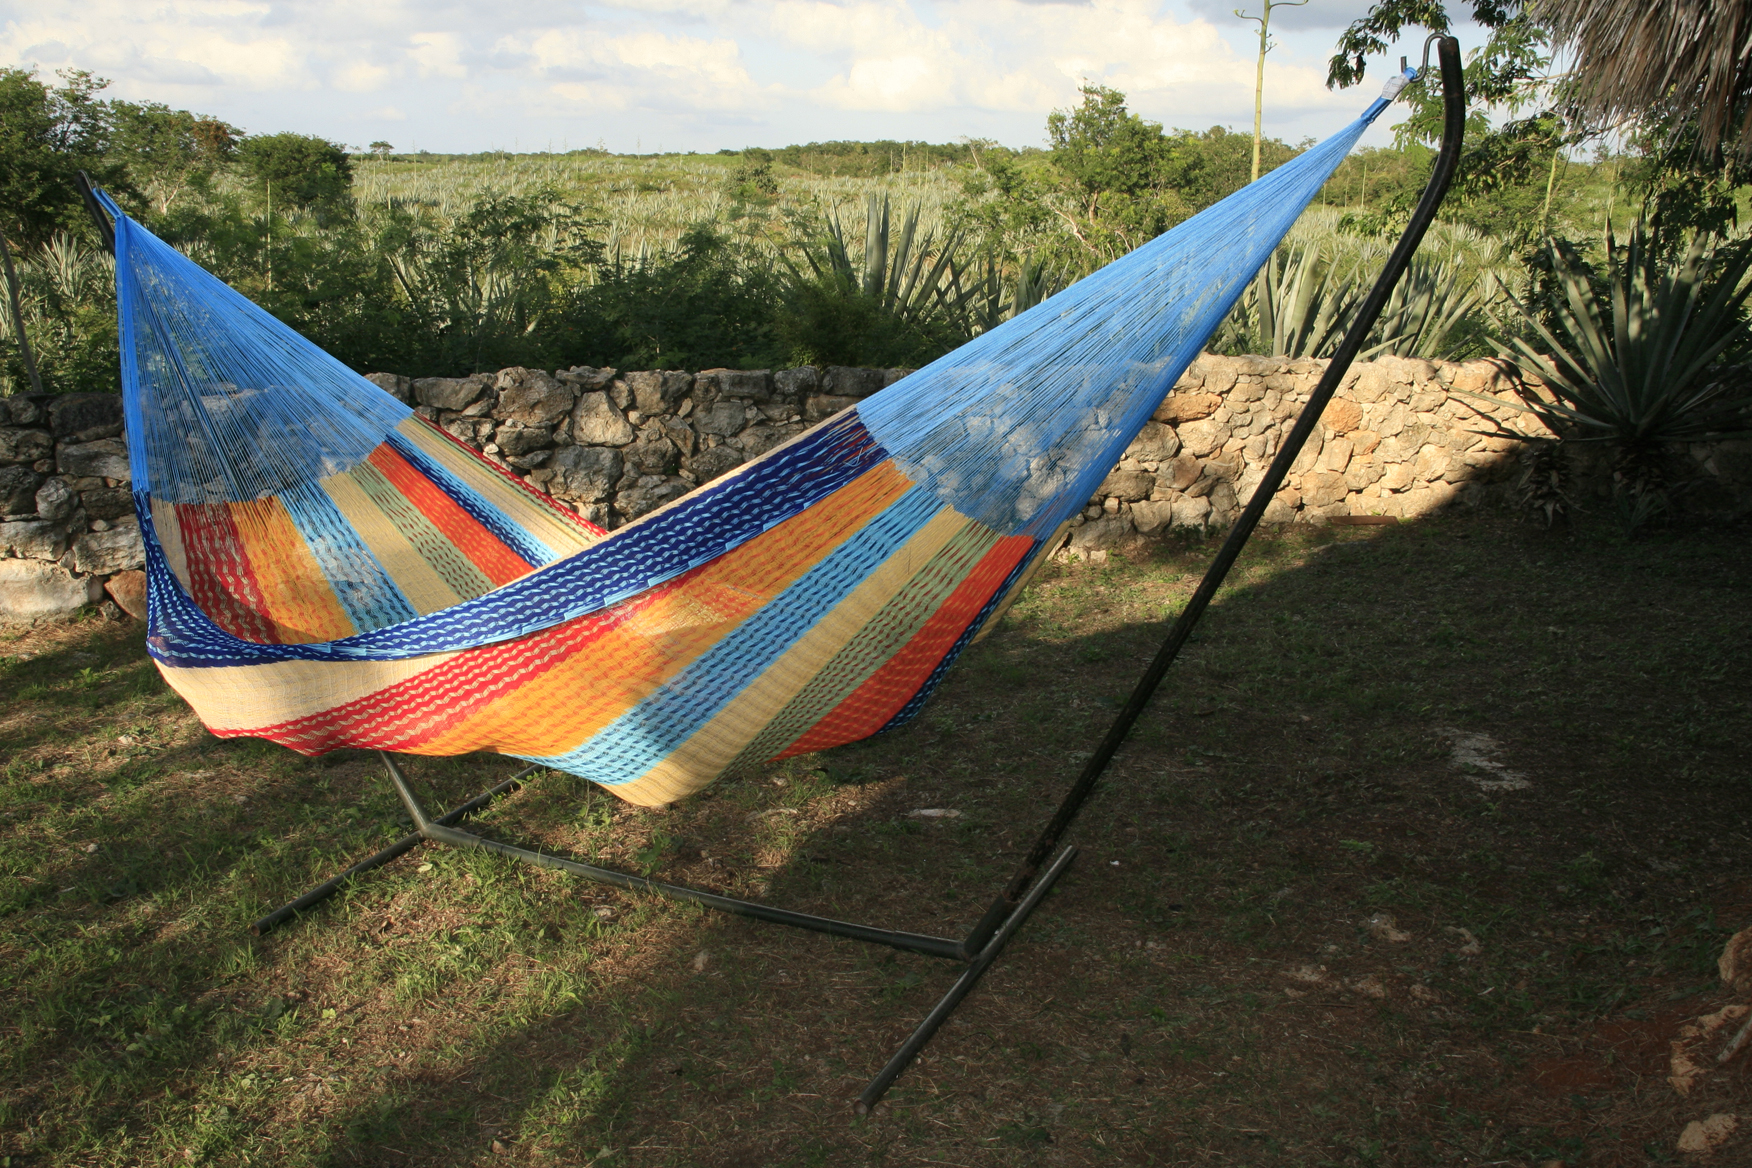 stripe ft single colombian xx in rd shop ftlr hammock hsgl red